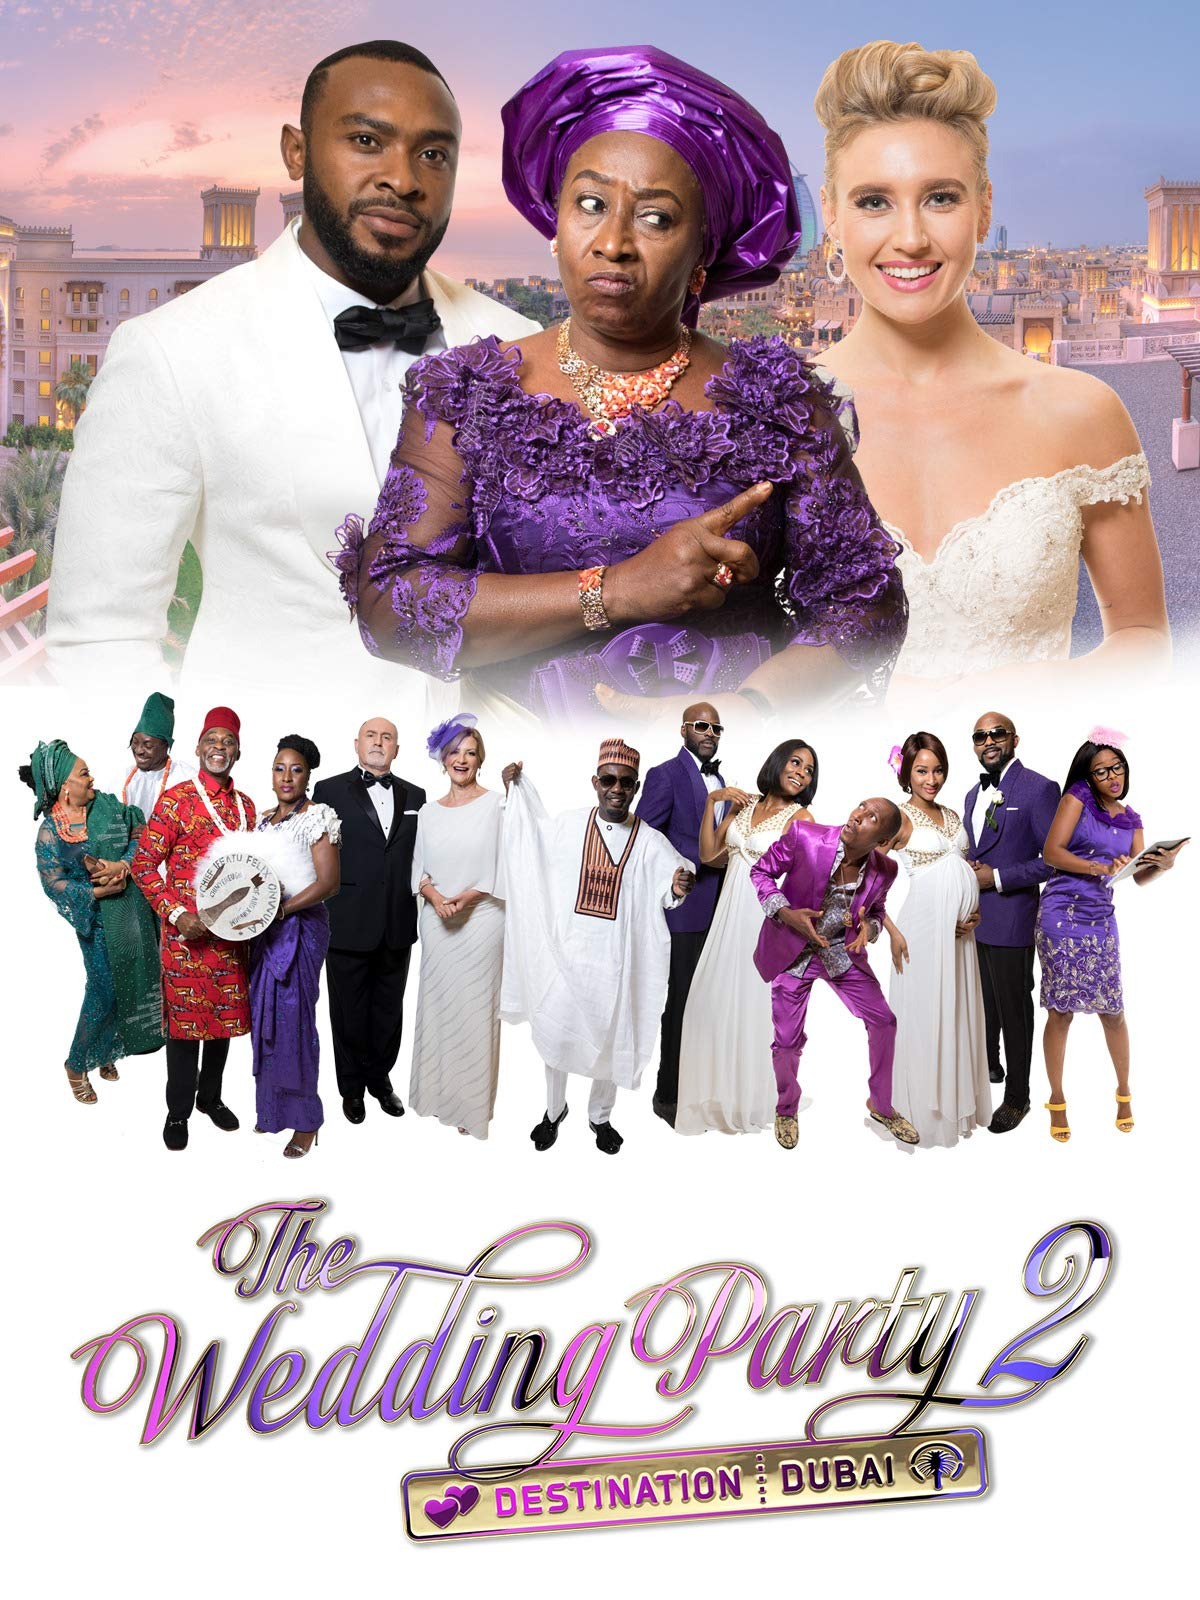 Amazoncom Watch The Wedding Party 2 Destination Dubai Prime Video